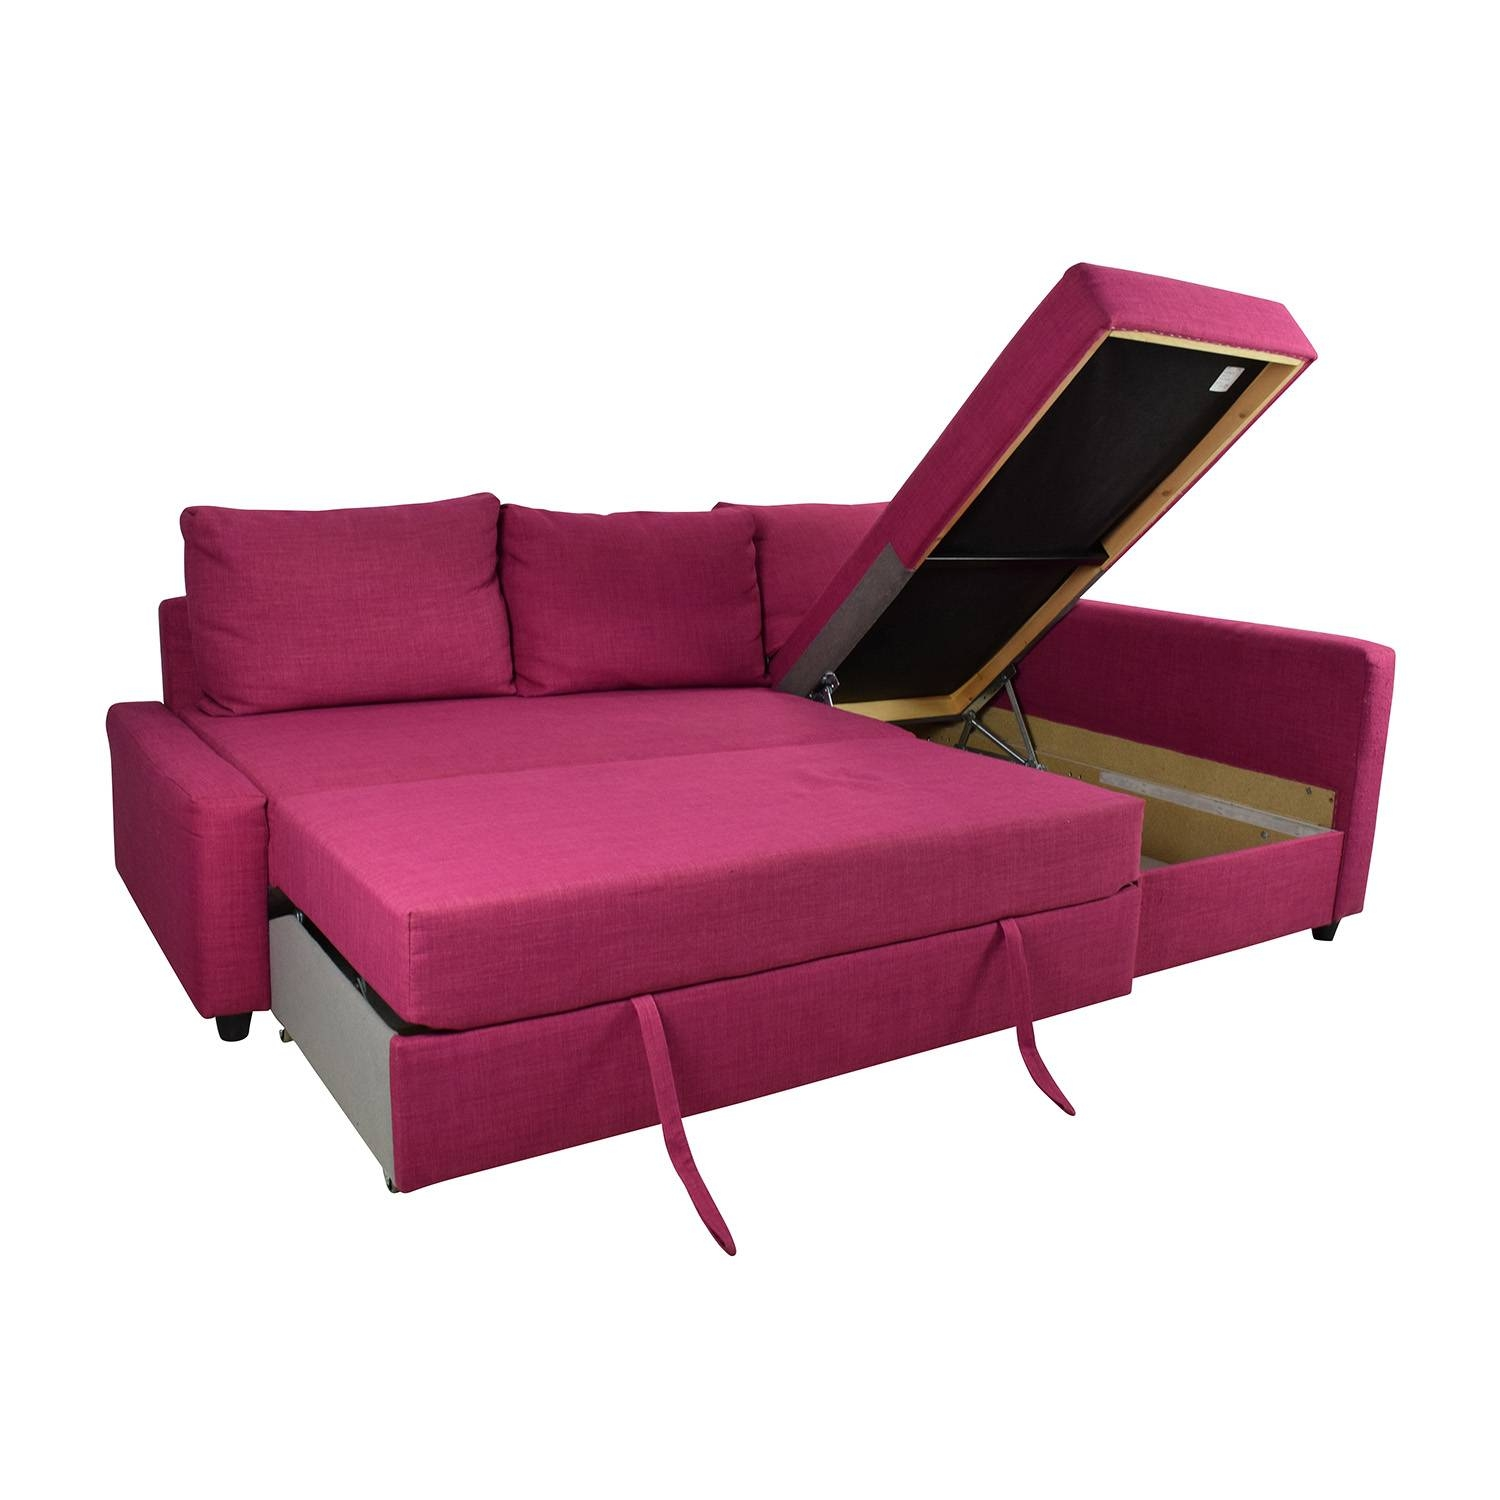 66% Off – Ikea Ikea Friheten Pink Sleeper Sofa / Sofas Regarding Sleeper Sofa Sectional Ikea (View 1 of 25)